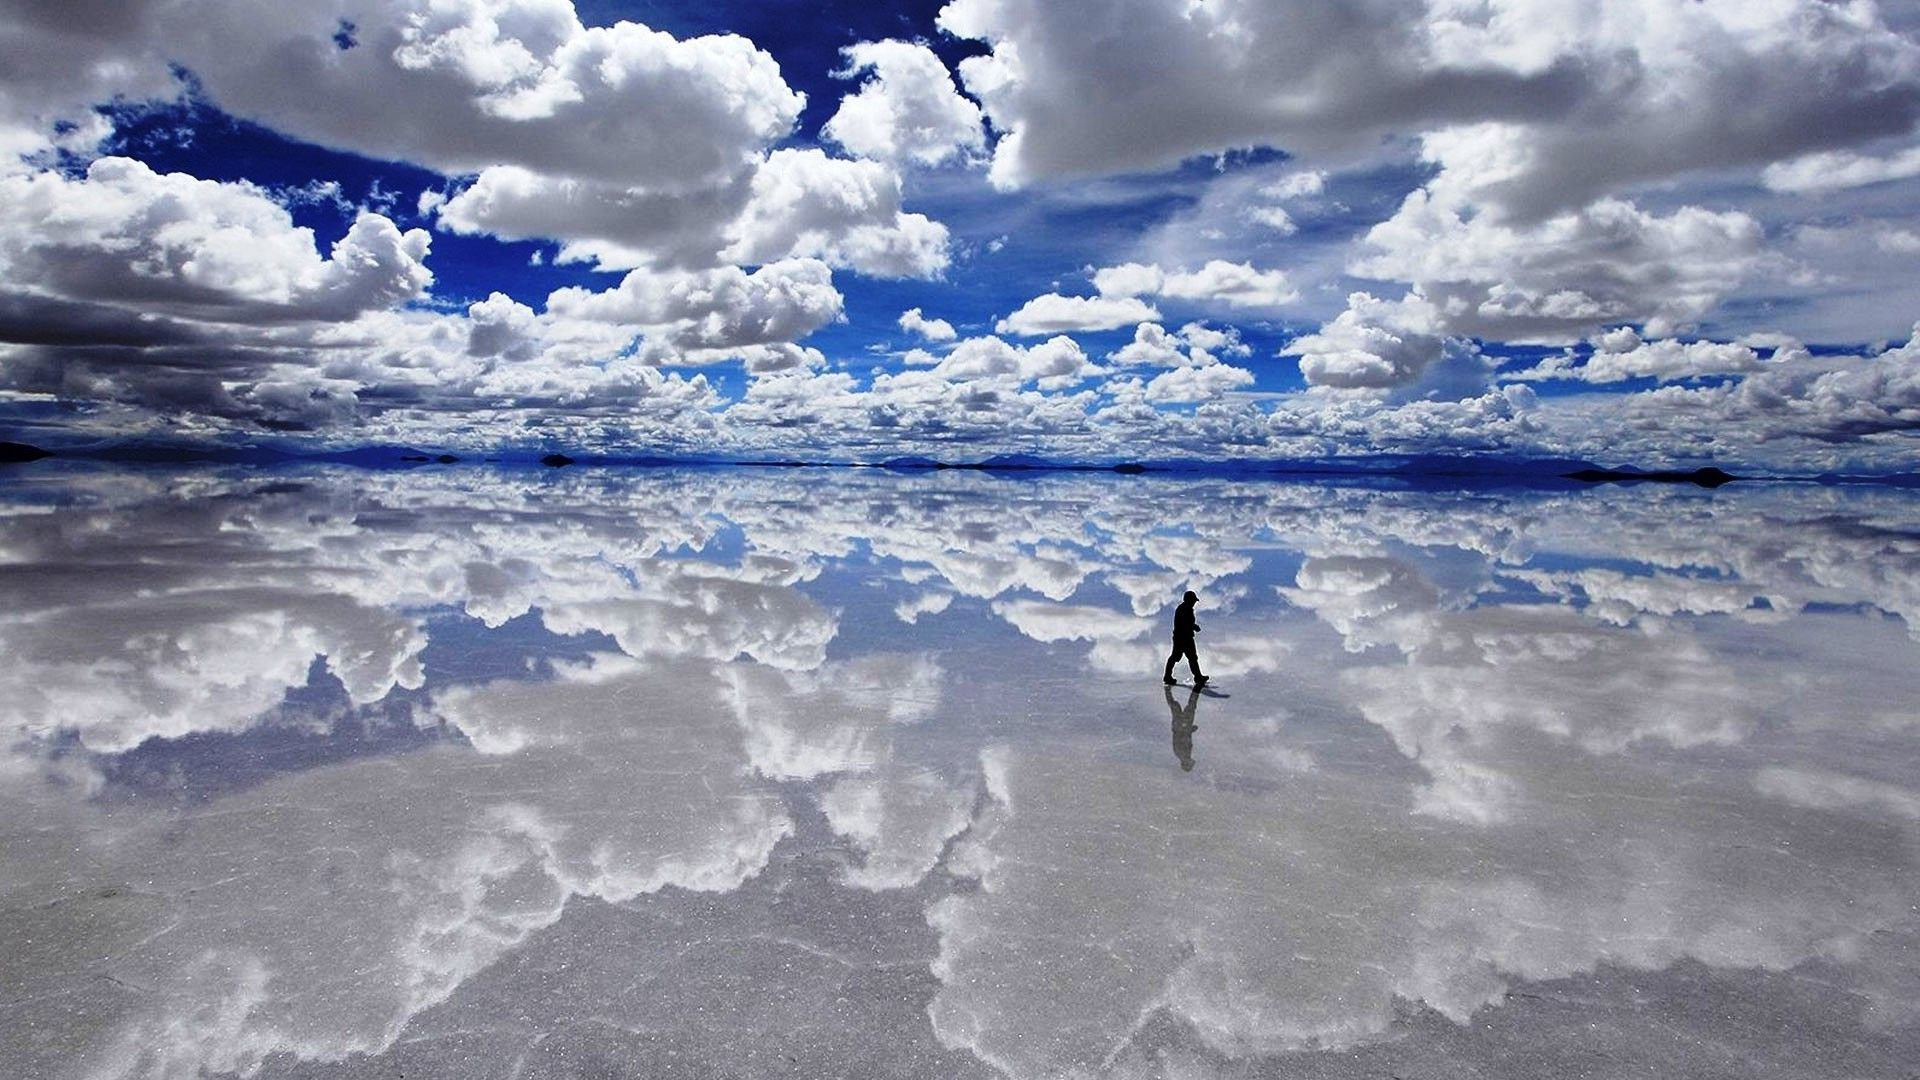 uyuni 4K wallpapers for your desktop or mobile screen and 1920x1080